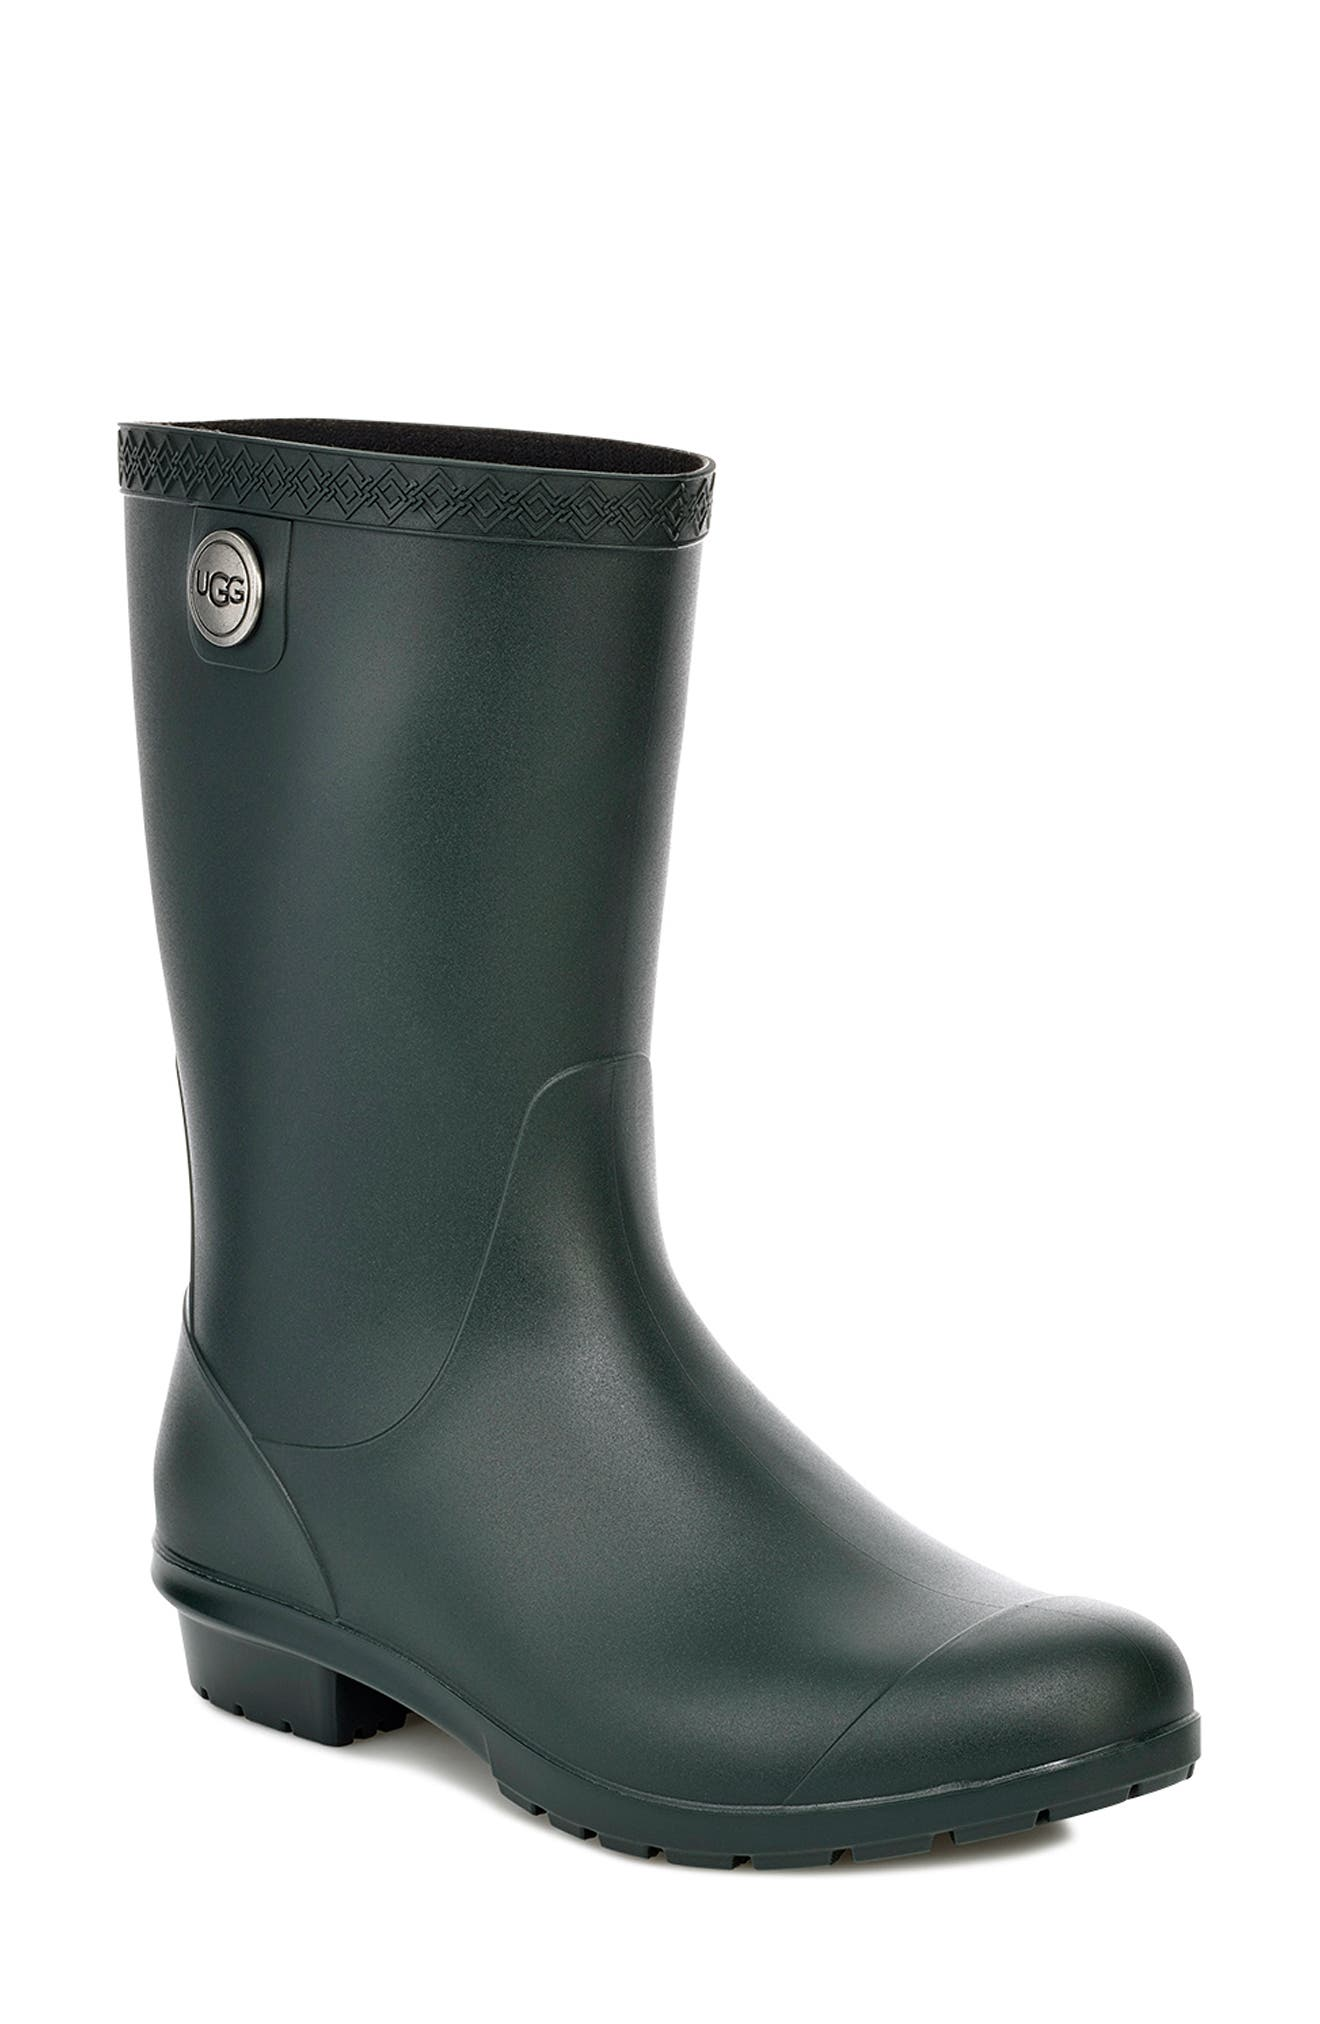 Sienna Rain Boot,                             Main thumbnail 1, color,                             OLIVE RUBBER